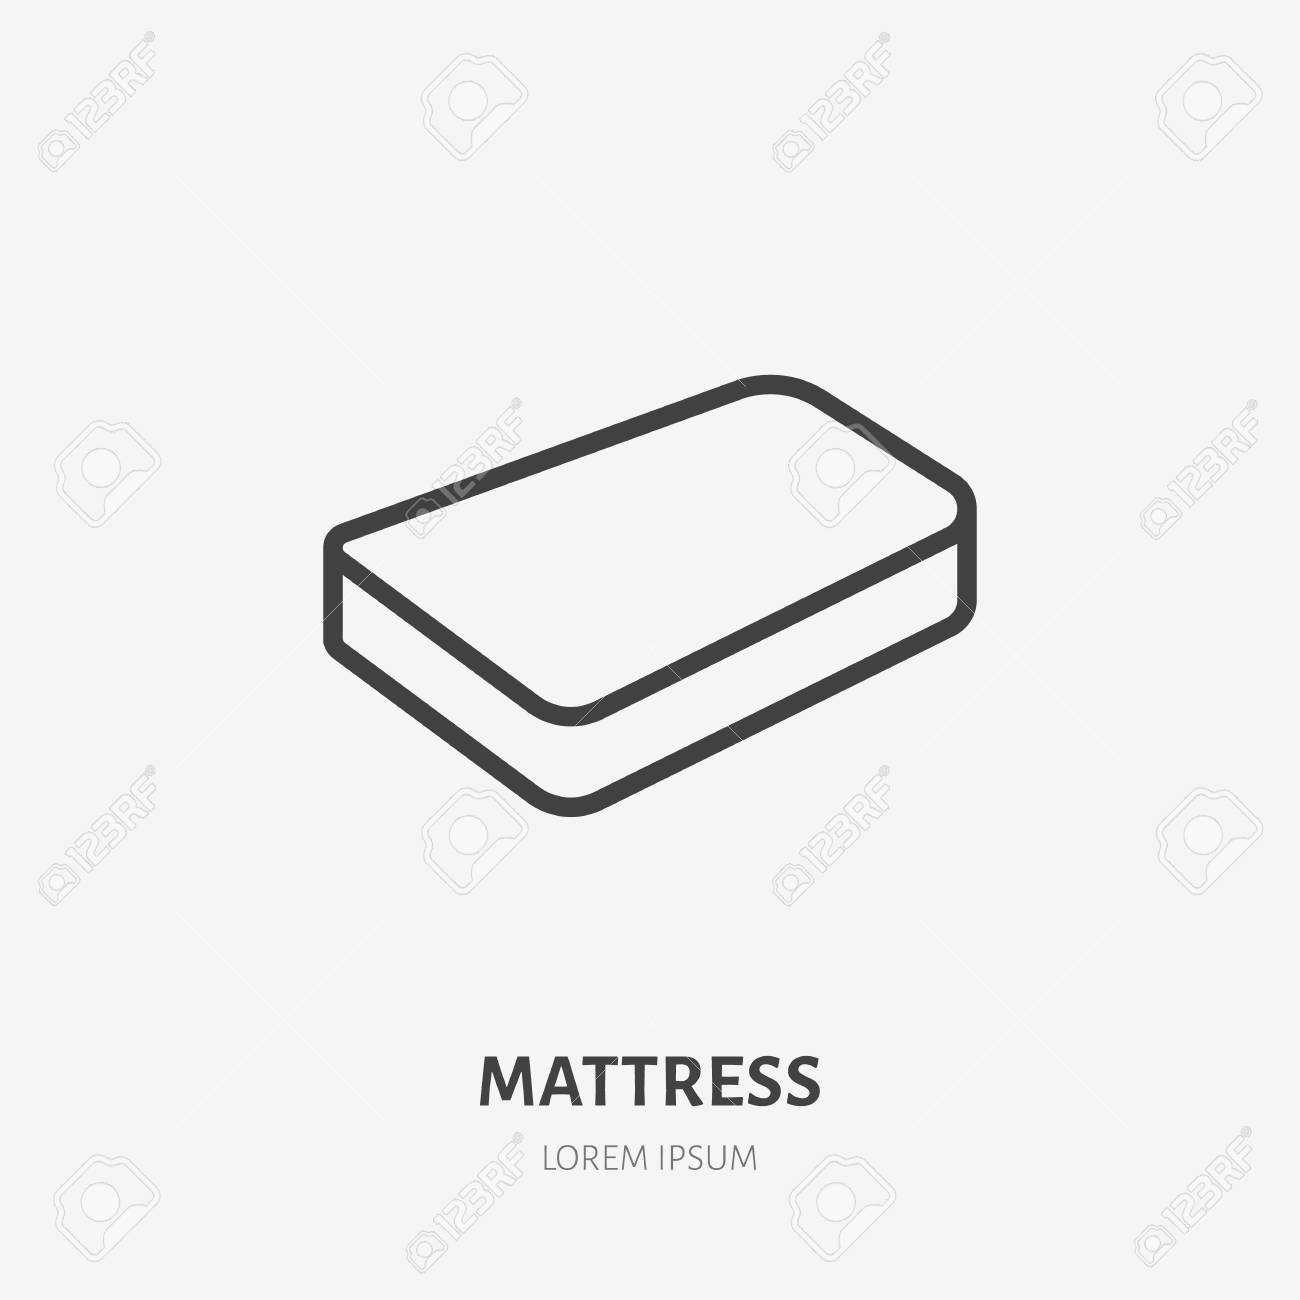 Mattress Flat Line Icon Bedding Sign Thin Linear Logo For Interior Royalty Free Cliparts Vectors And Stock Illustration Image 102614801